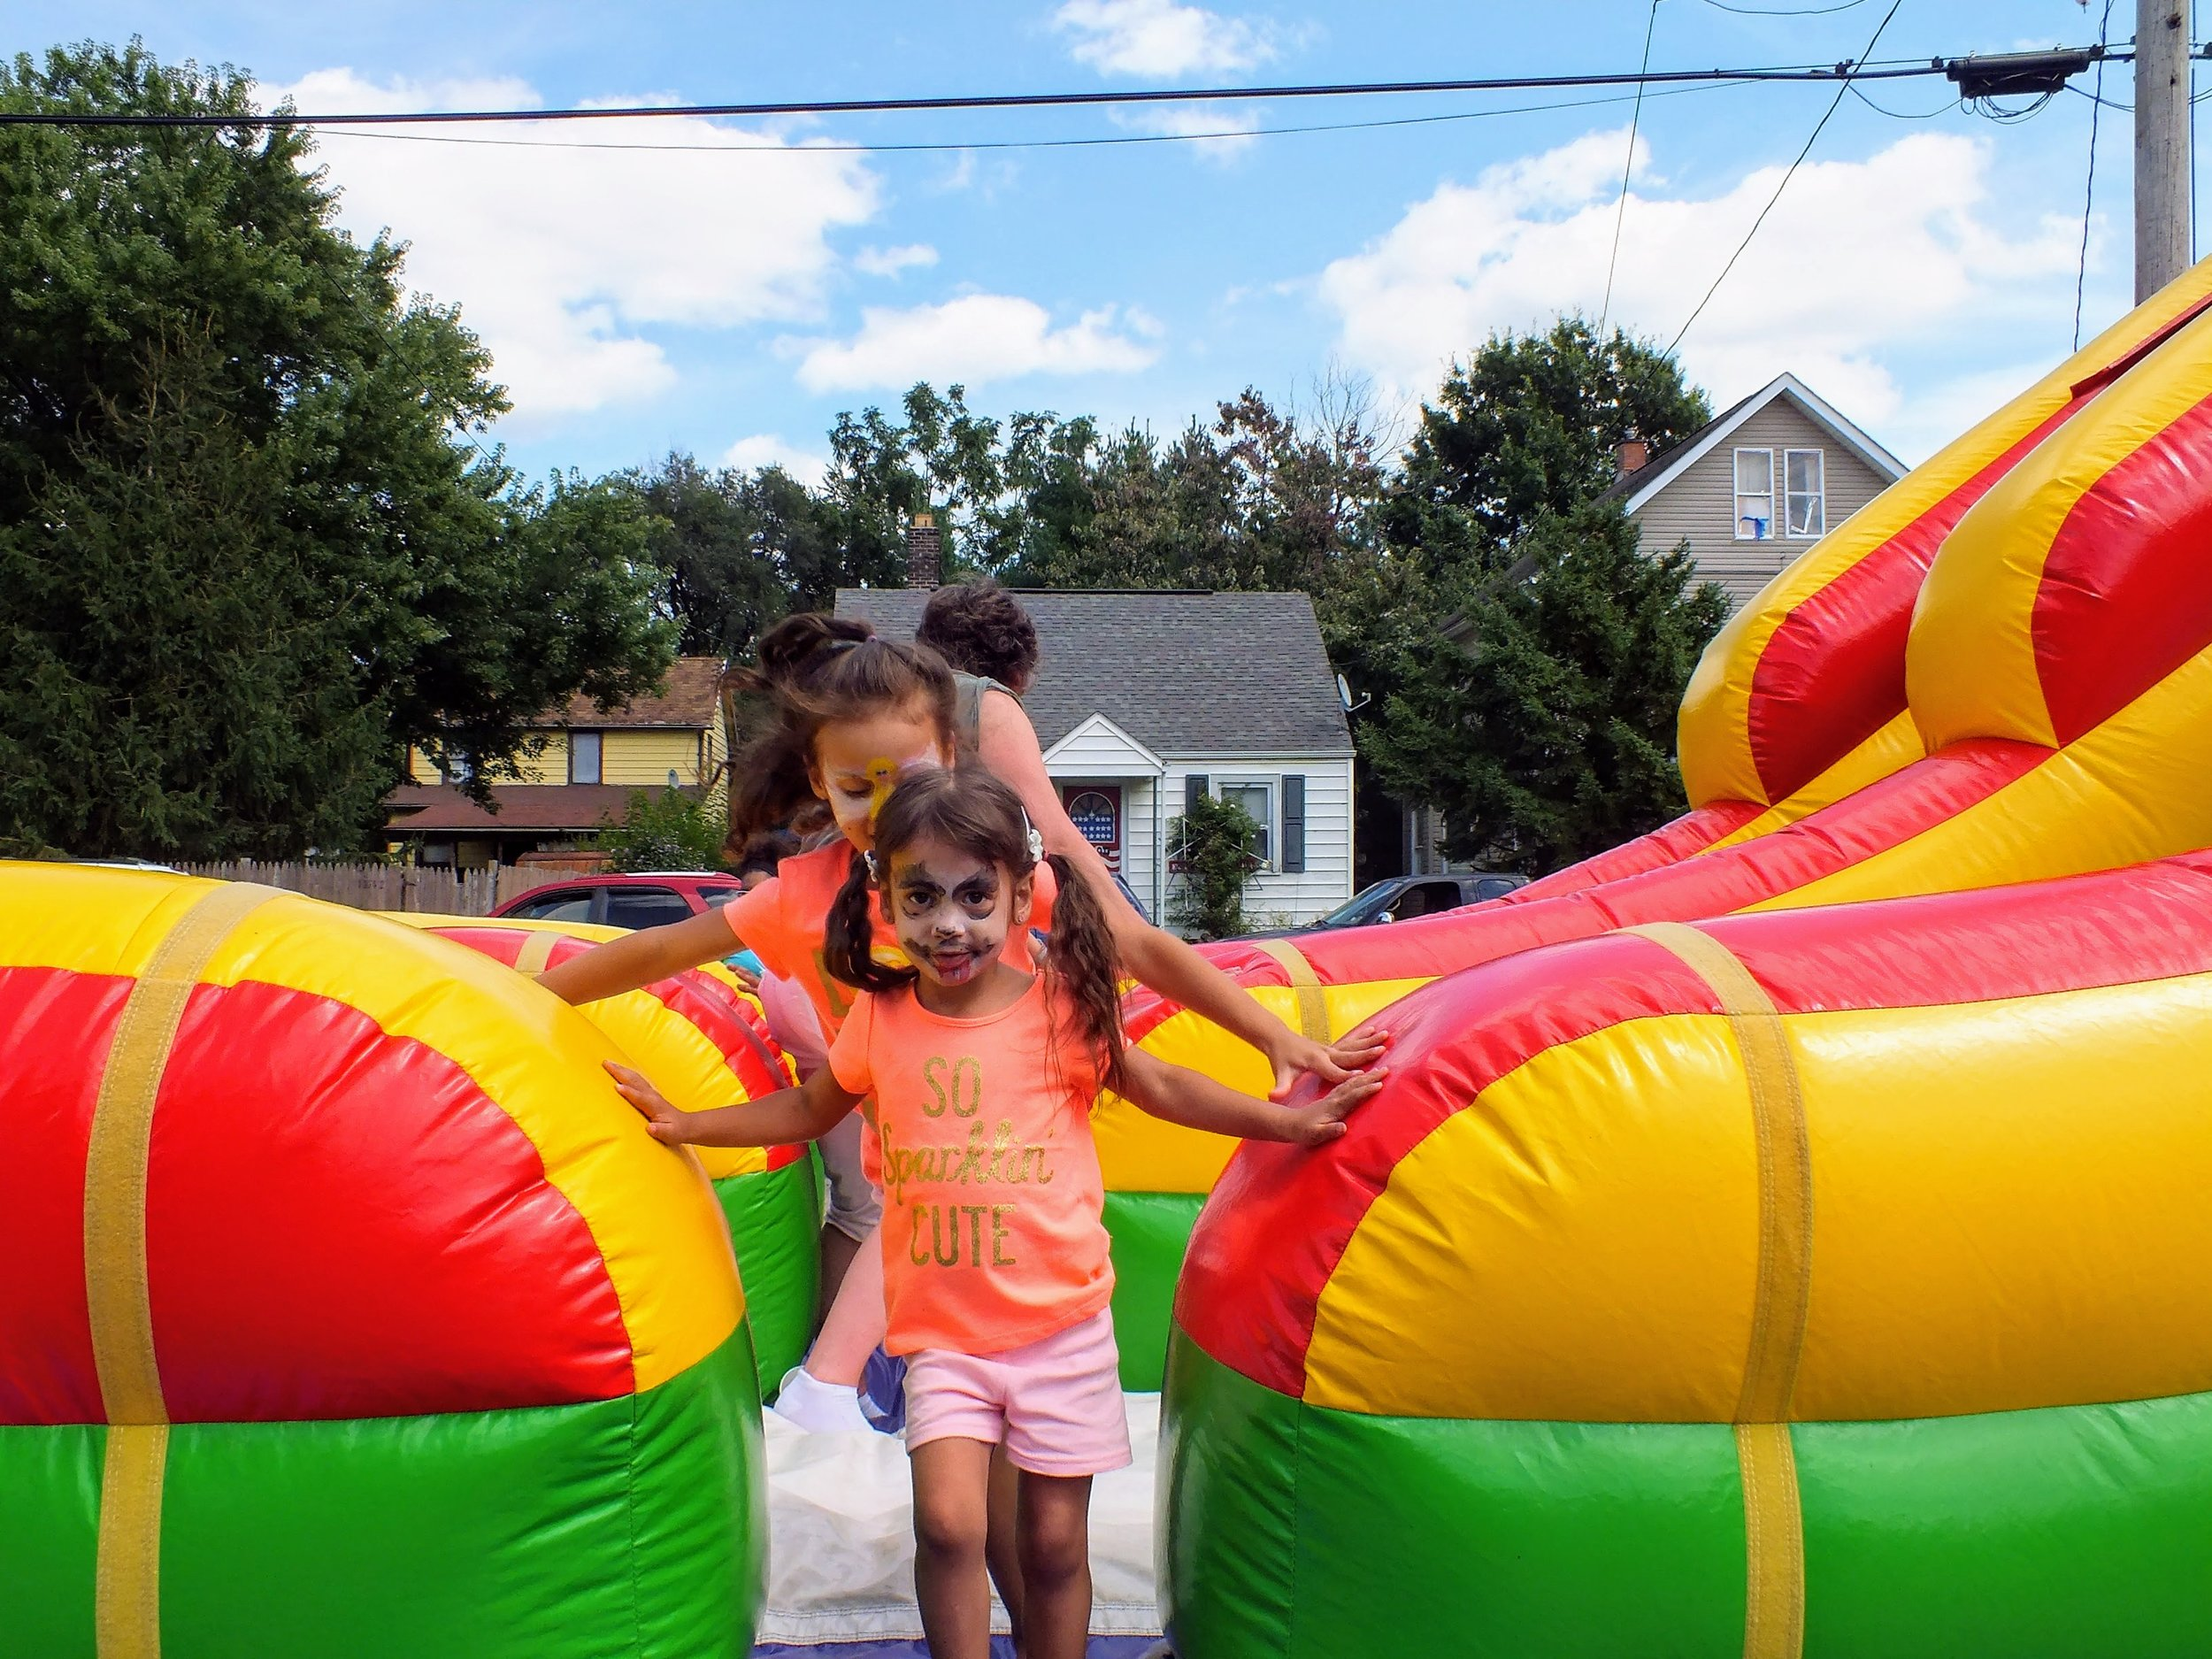 Children's festival - Every year our parish connects with the children of our neighborhood by hosting a festival. There is music, popcorn, face-painting, small rides, and, of course, the renowned